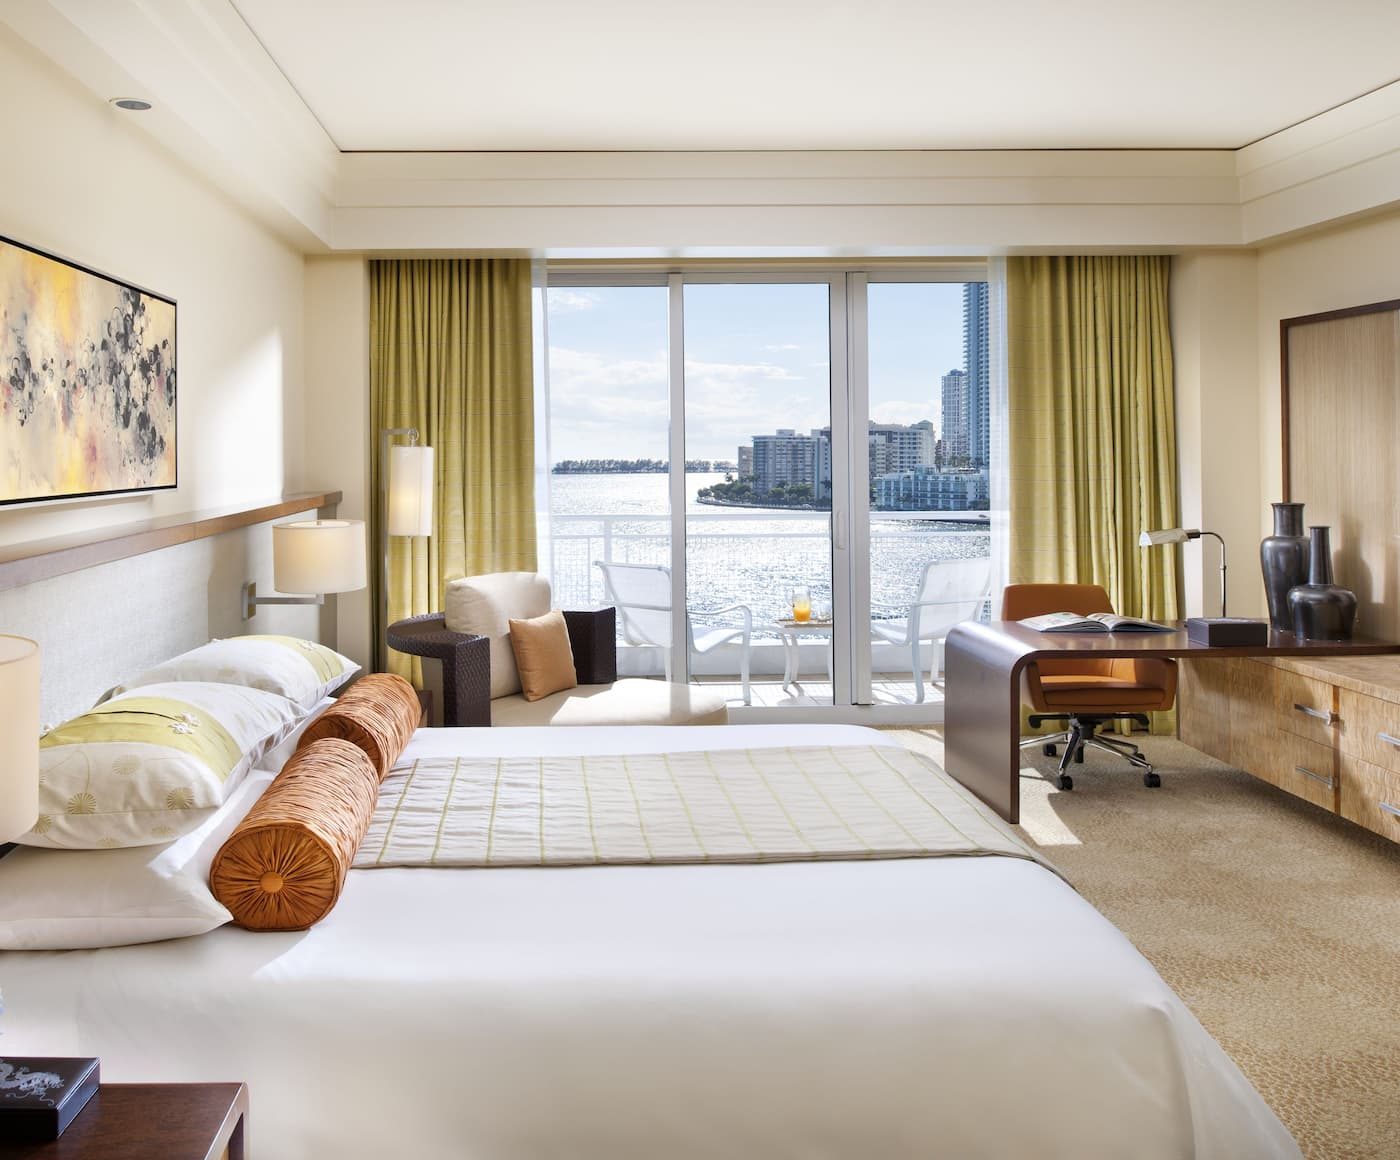 Deluxe Skyline View Connecting Rooms